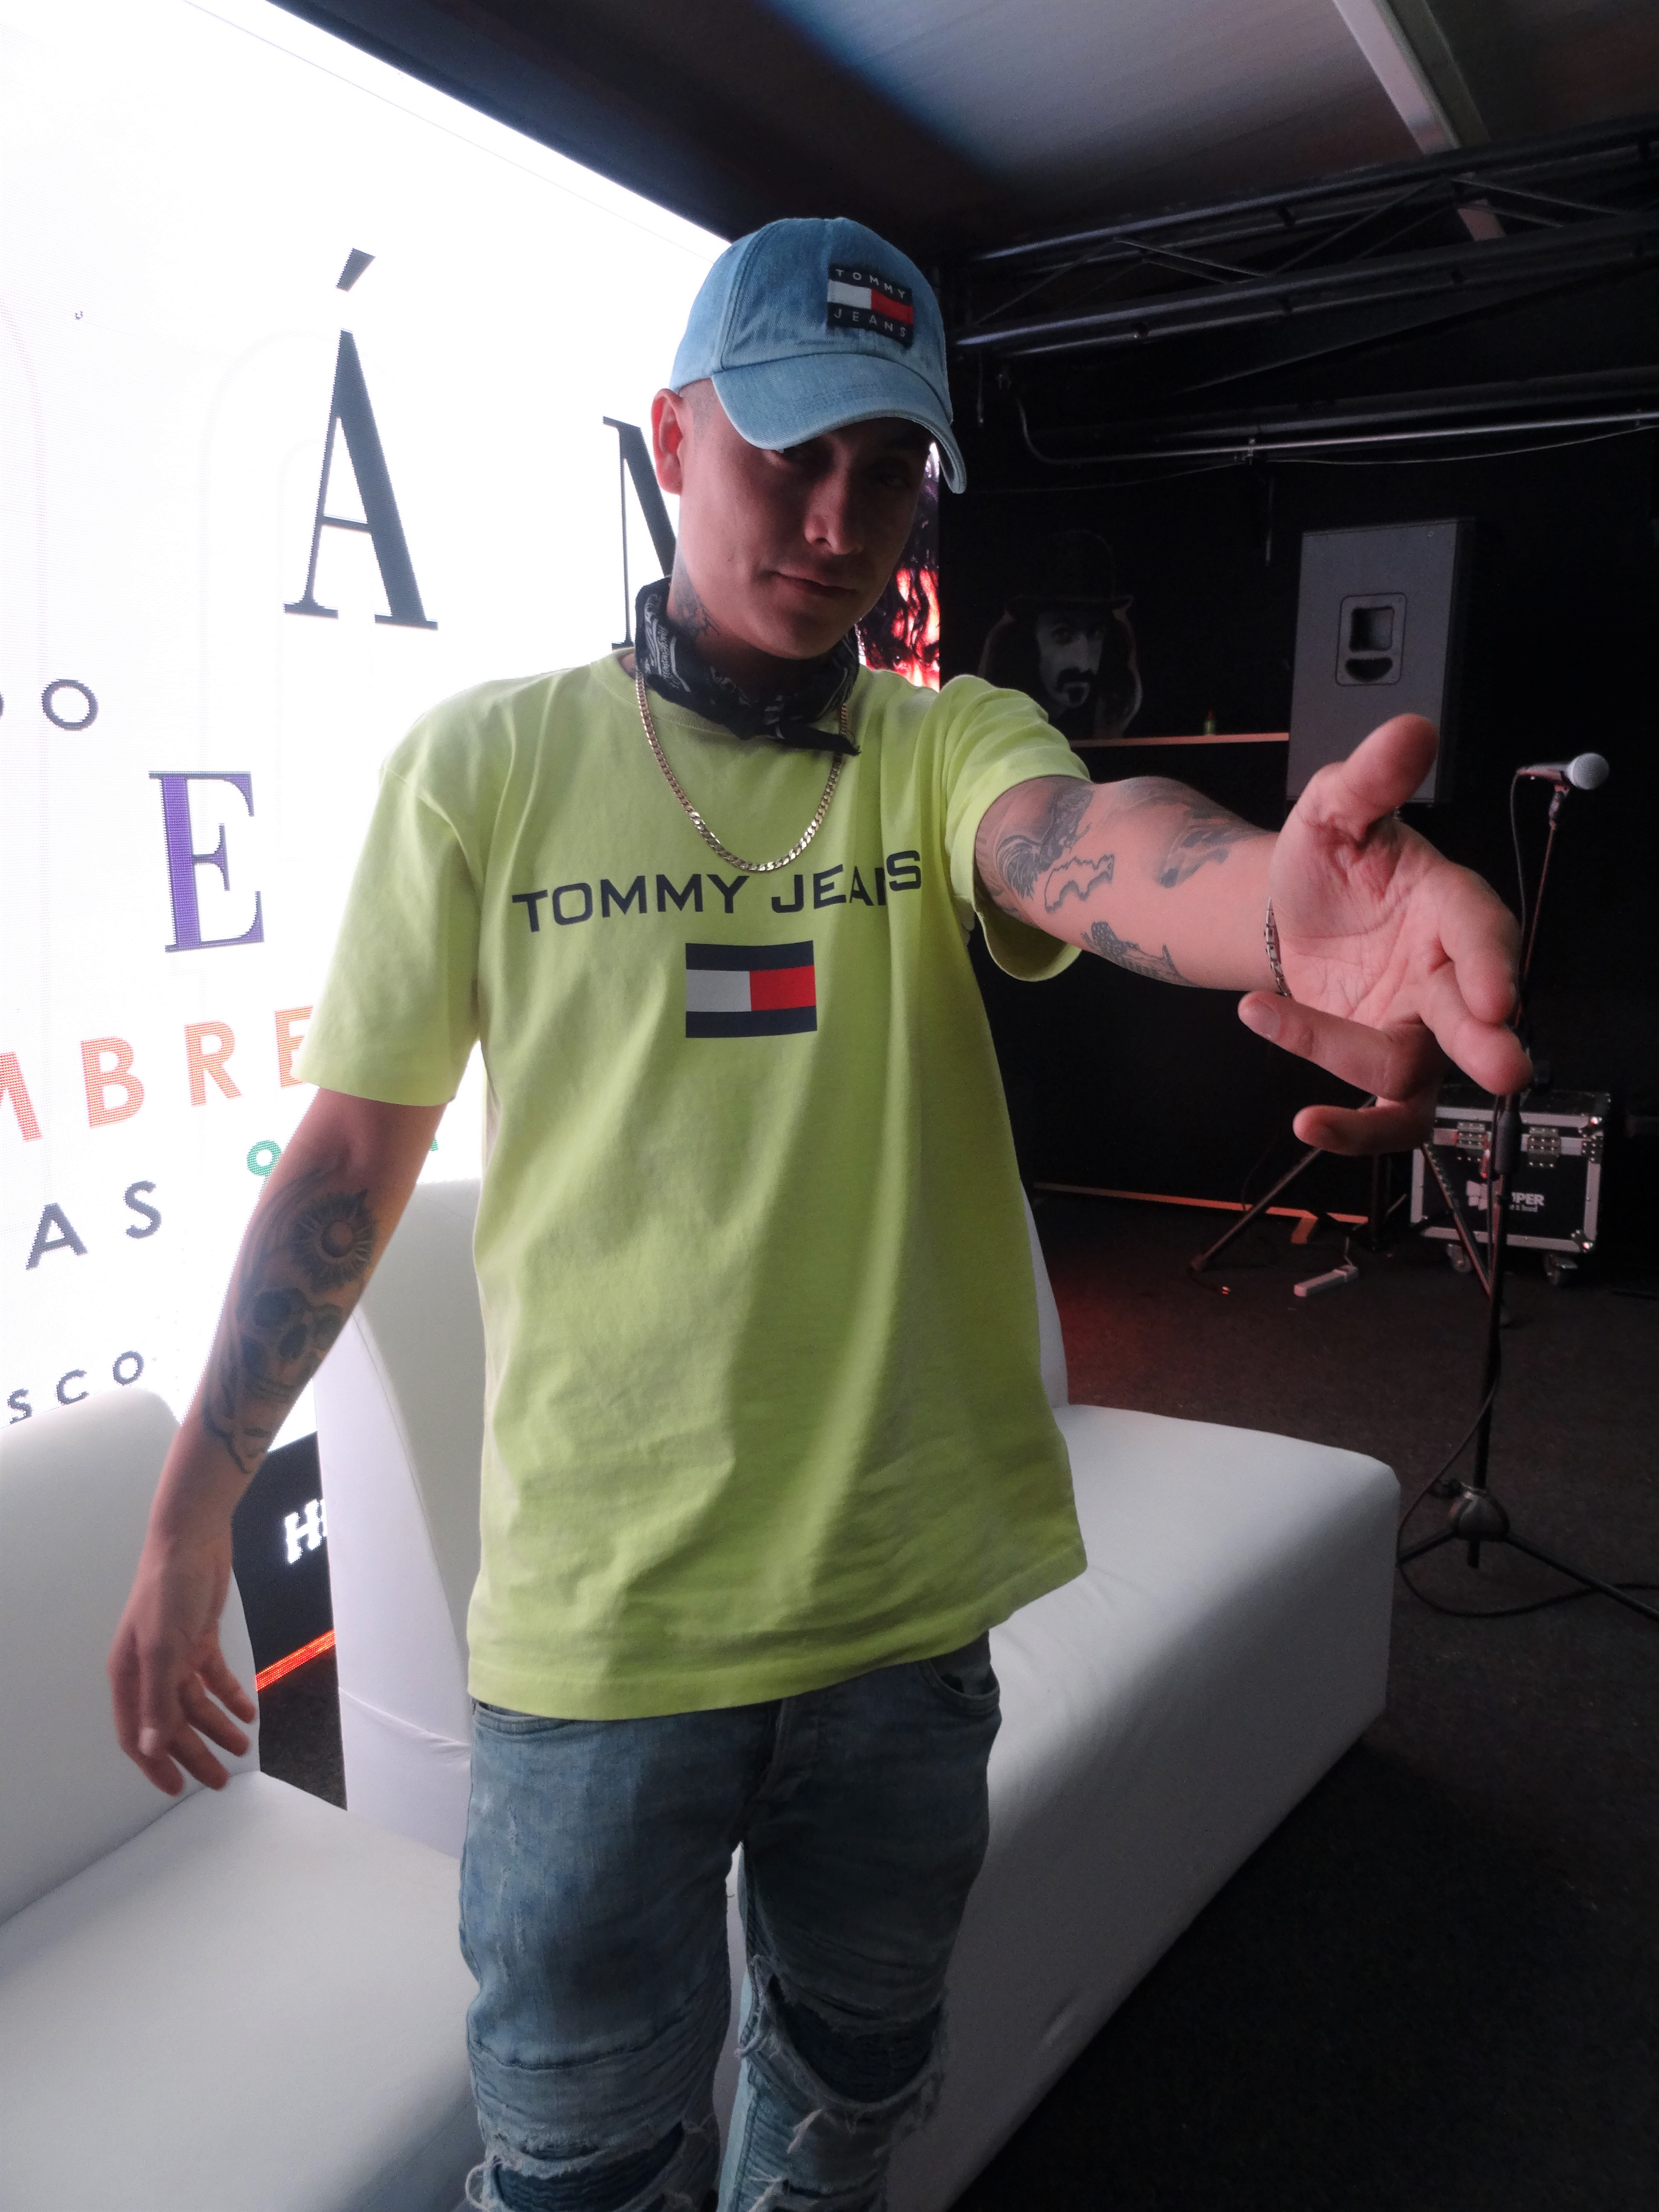 Aleman, referente del rap mexicano